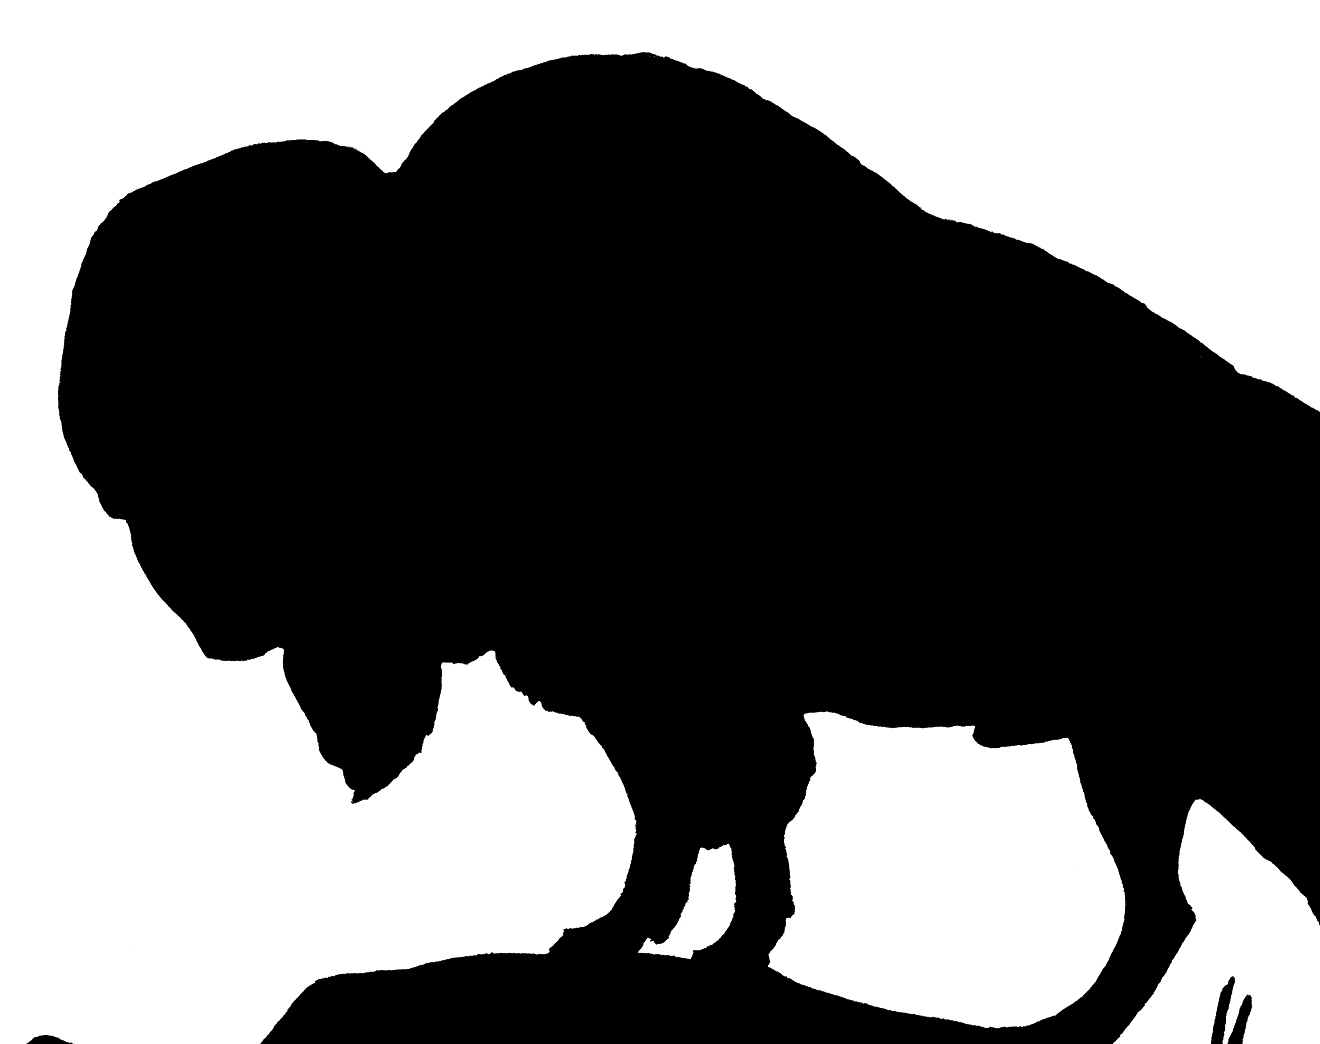 Vintage Buffalo Silhouette Image! - The Graphics Fairy